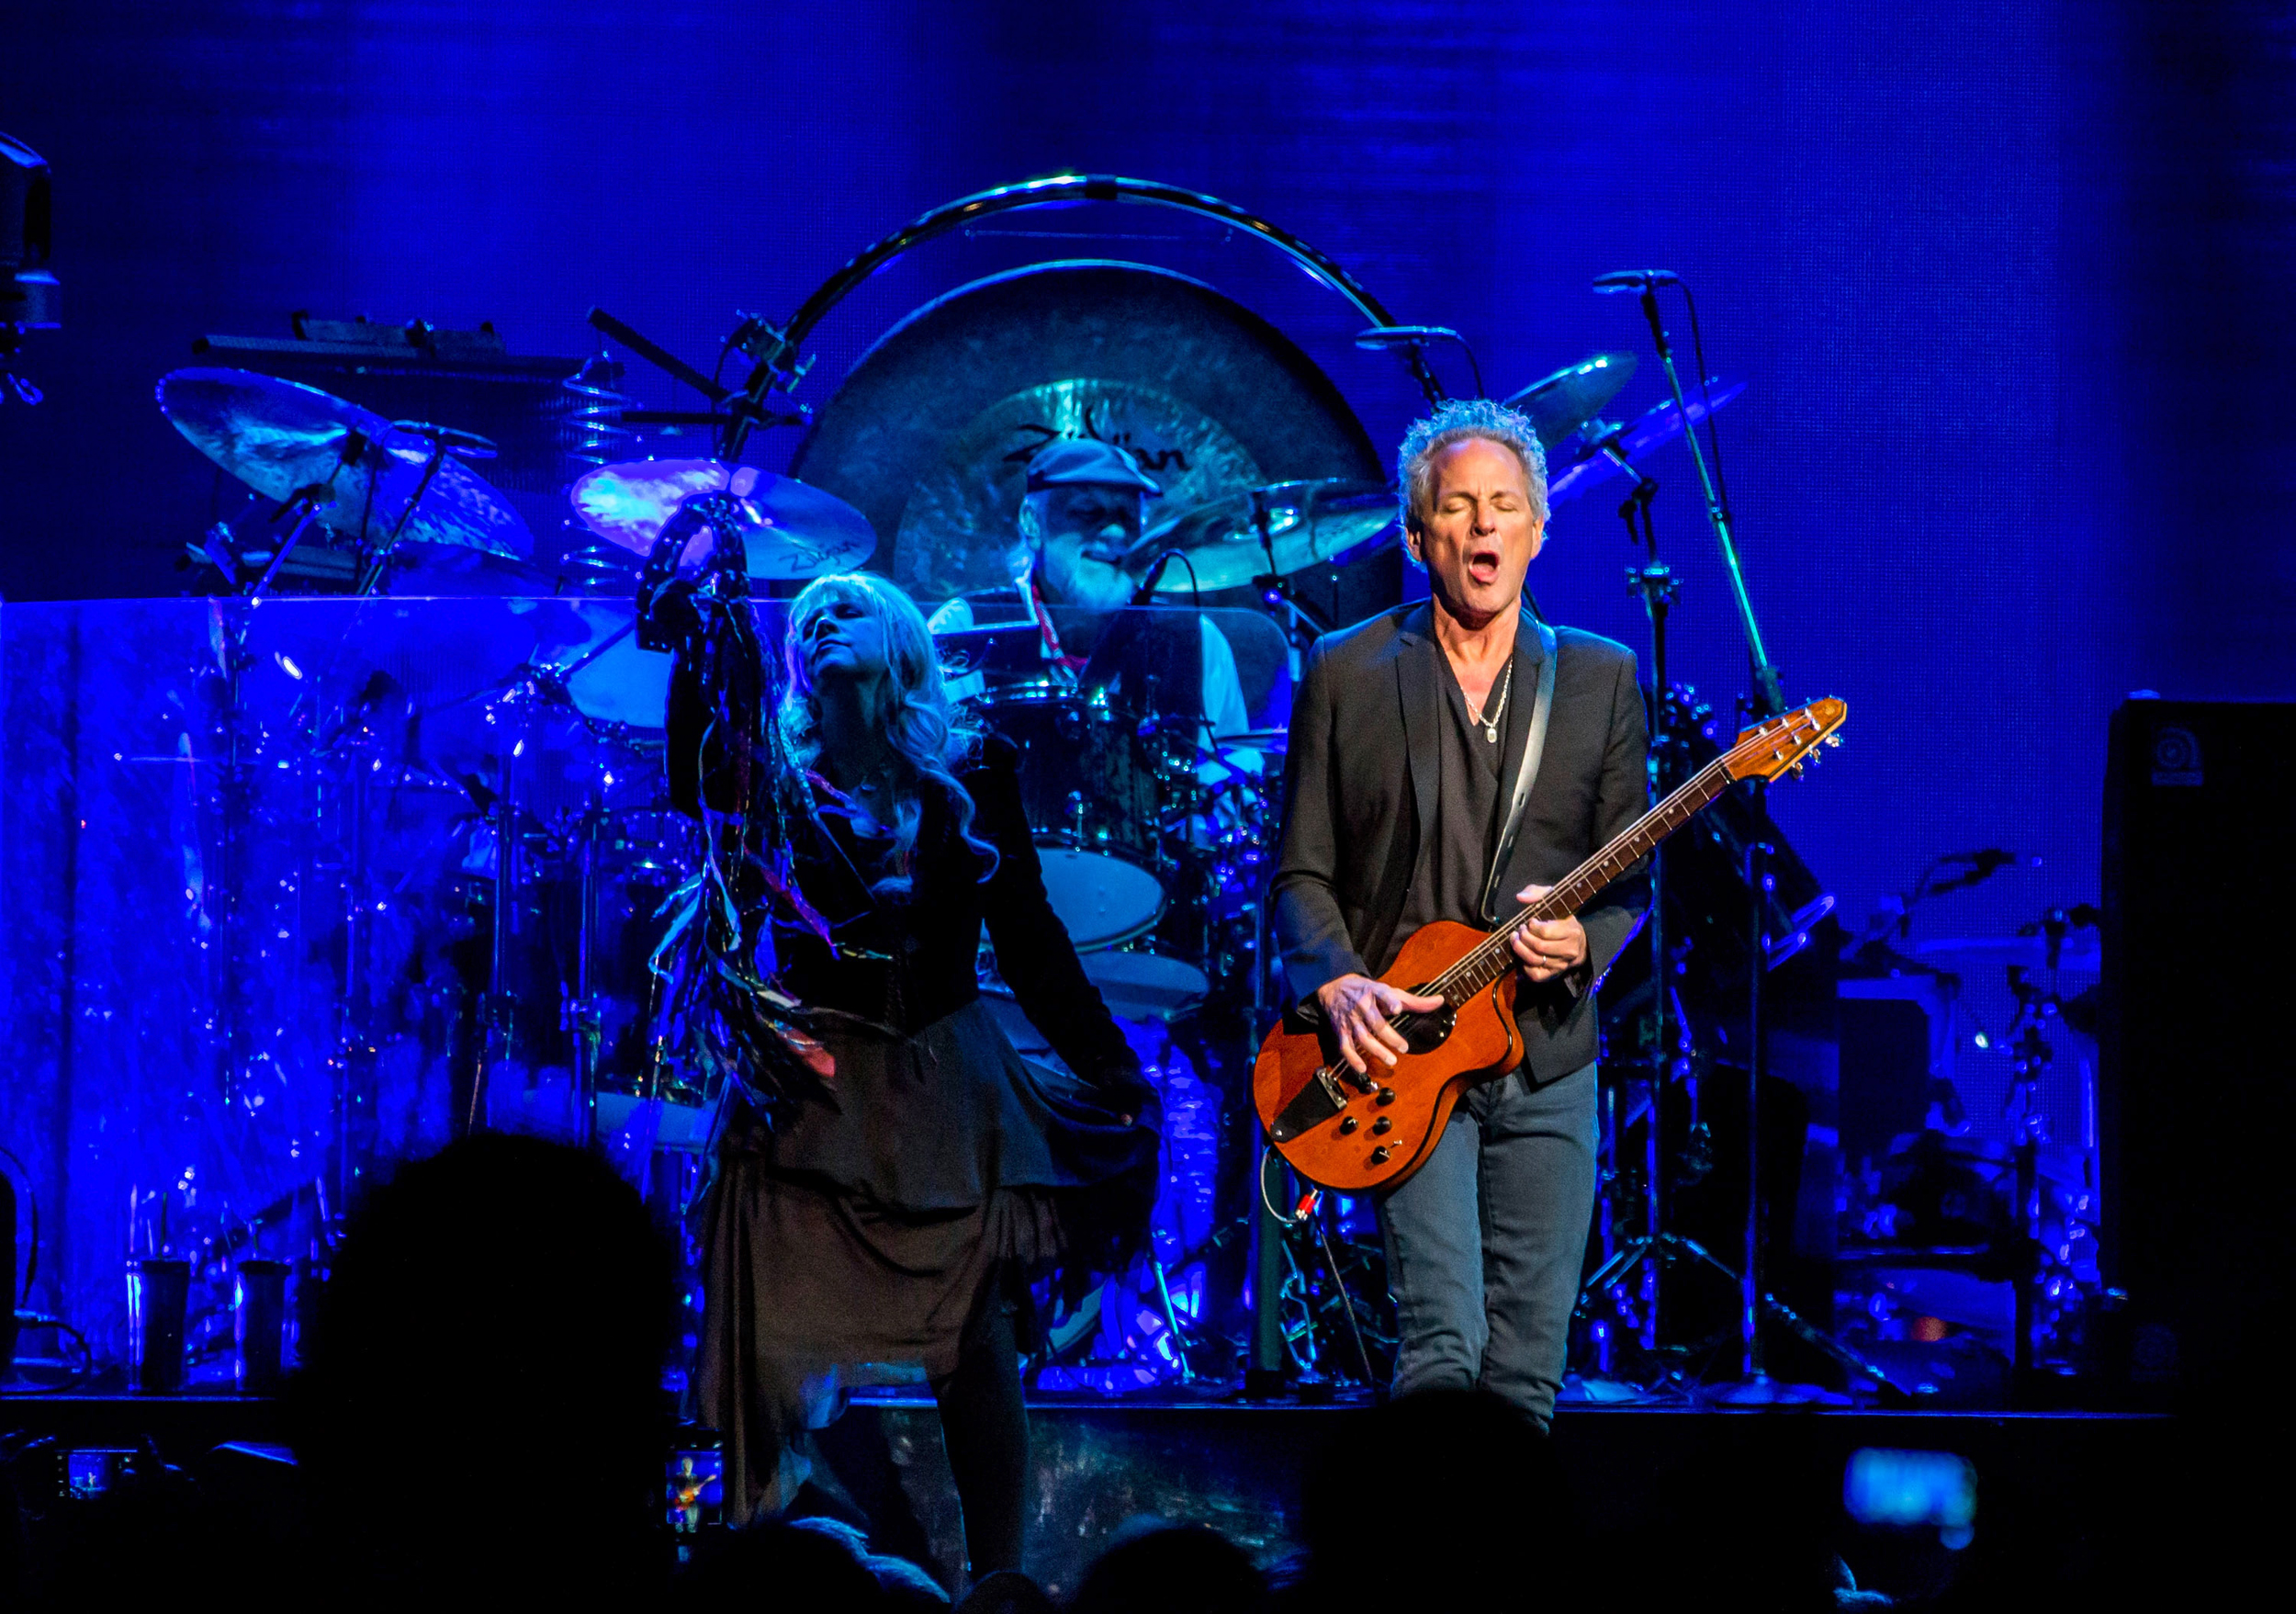 Fleetwood Mac In Concert - Detroit, MI